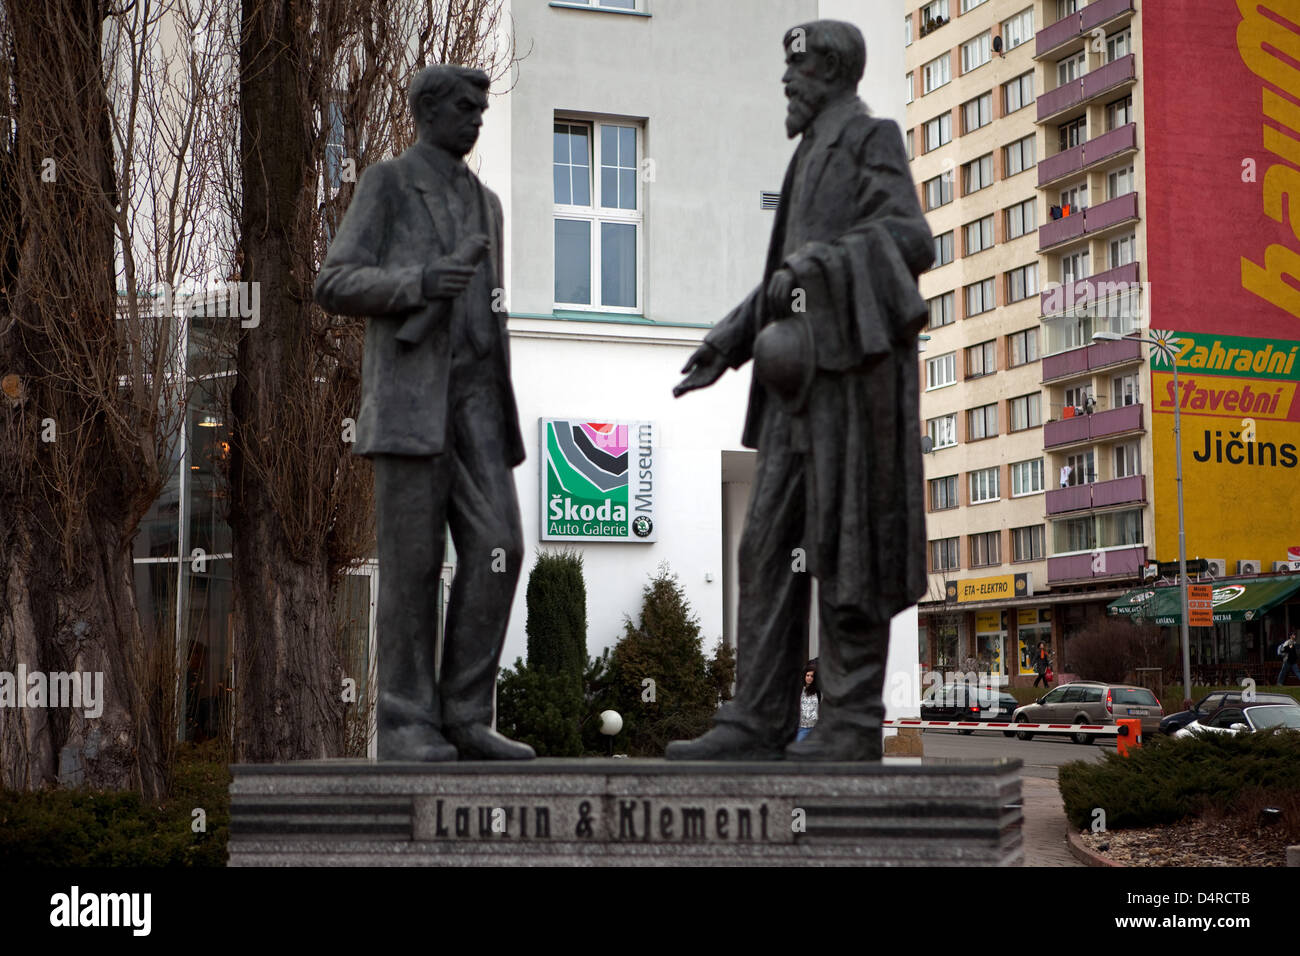 Sculptures of Skoda founder Vaclav Laurin and Vaclav Klement pictured in Mlada Boleslav, Czech Republic, 10 March - Stock Image